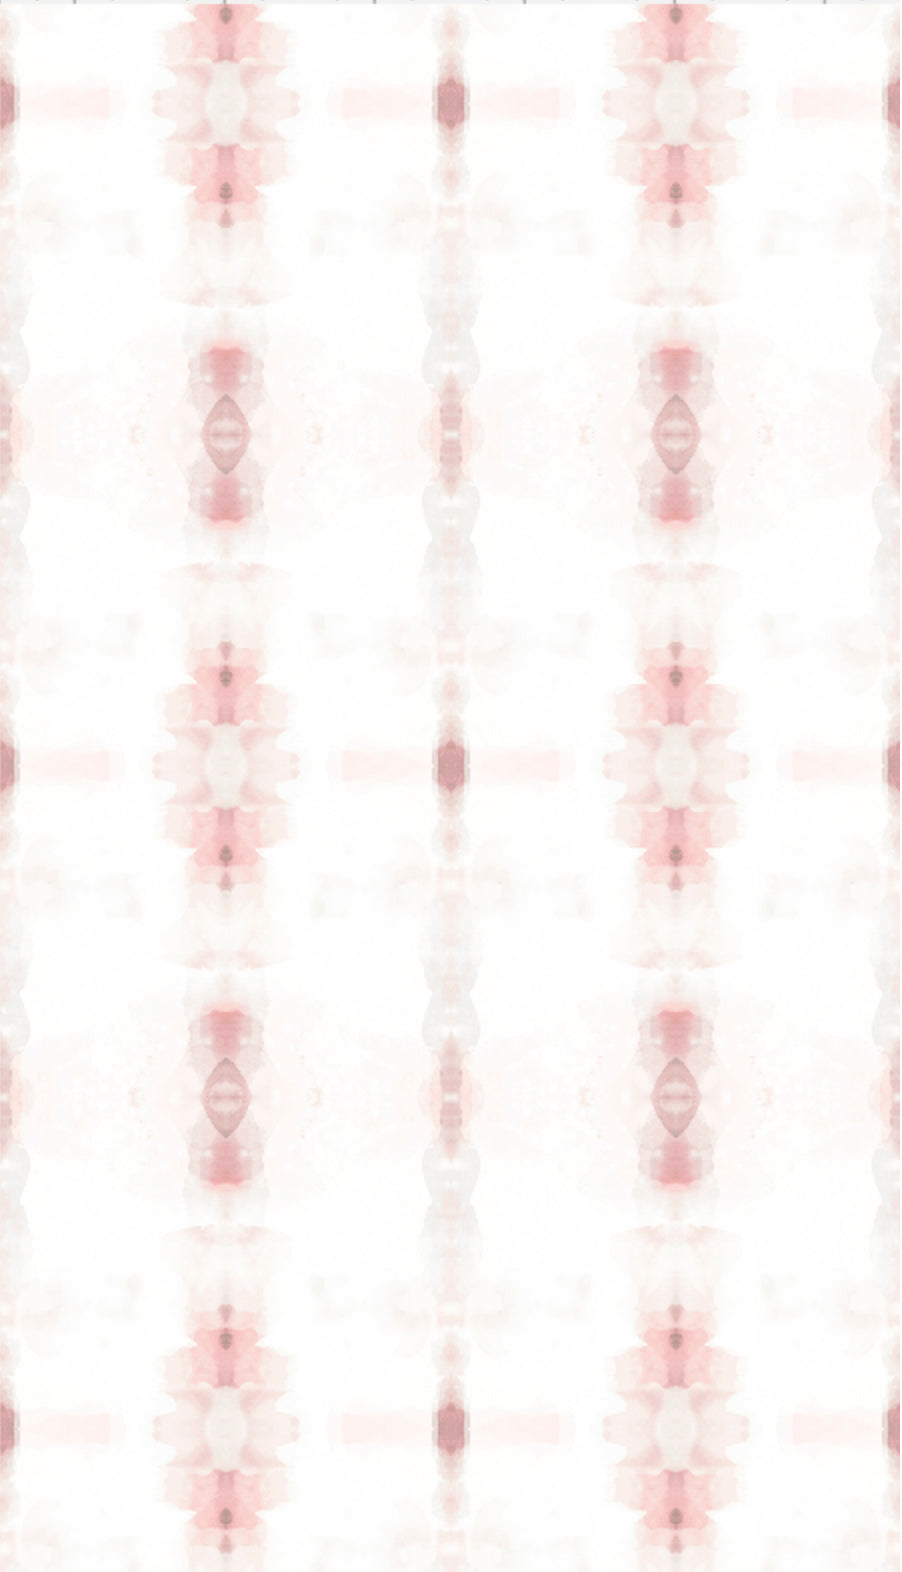 painted wallpaper, wallpaper from art, blush wallpaper, blush and white wallpaper, wallpaper from painting, blush and white wallpaper artist